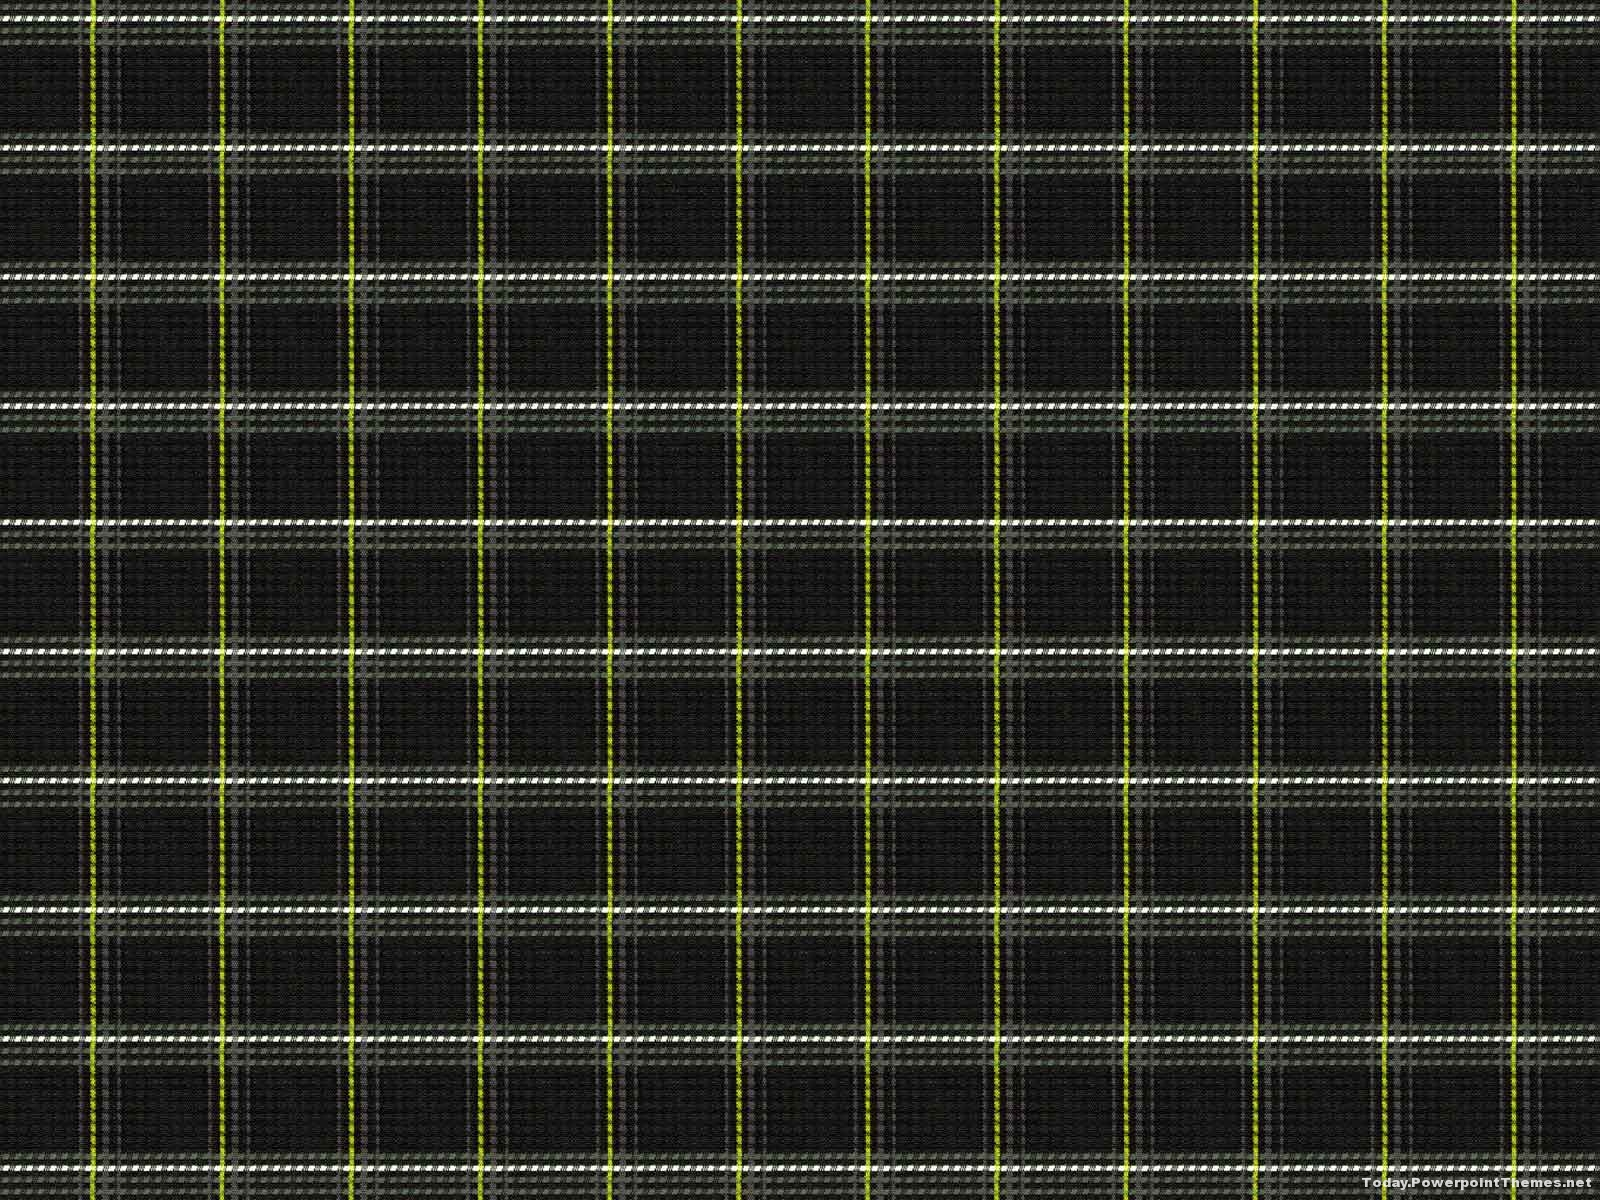 tartan-fabric-textile-pattern-background-powerpoint